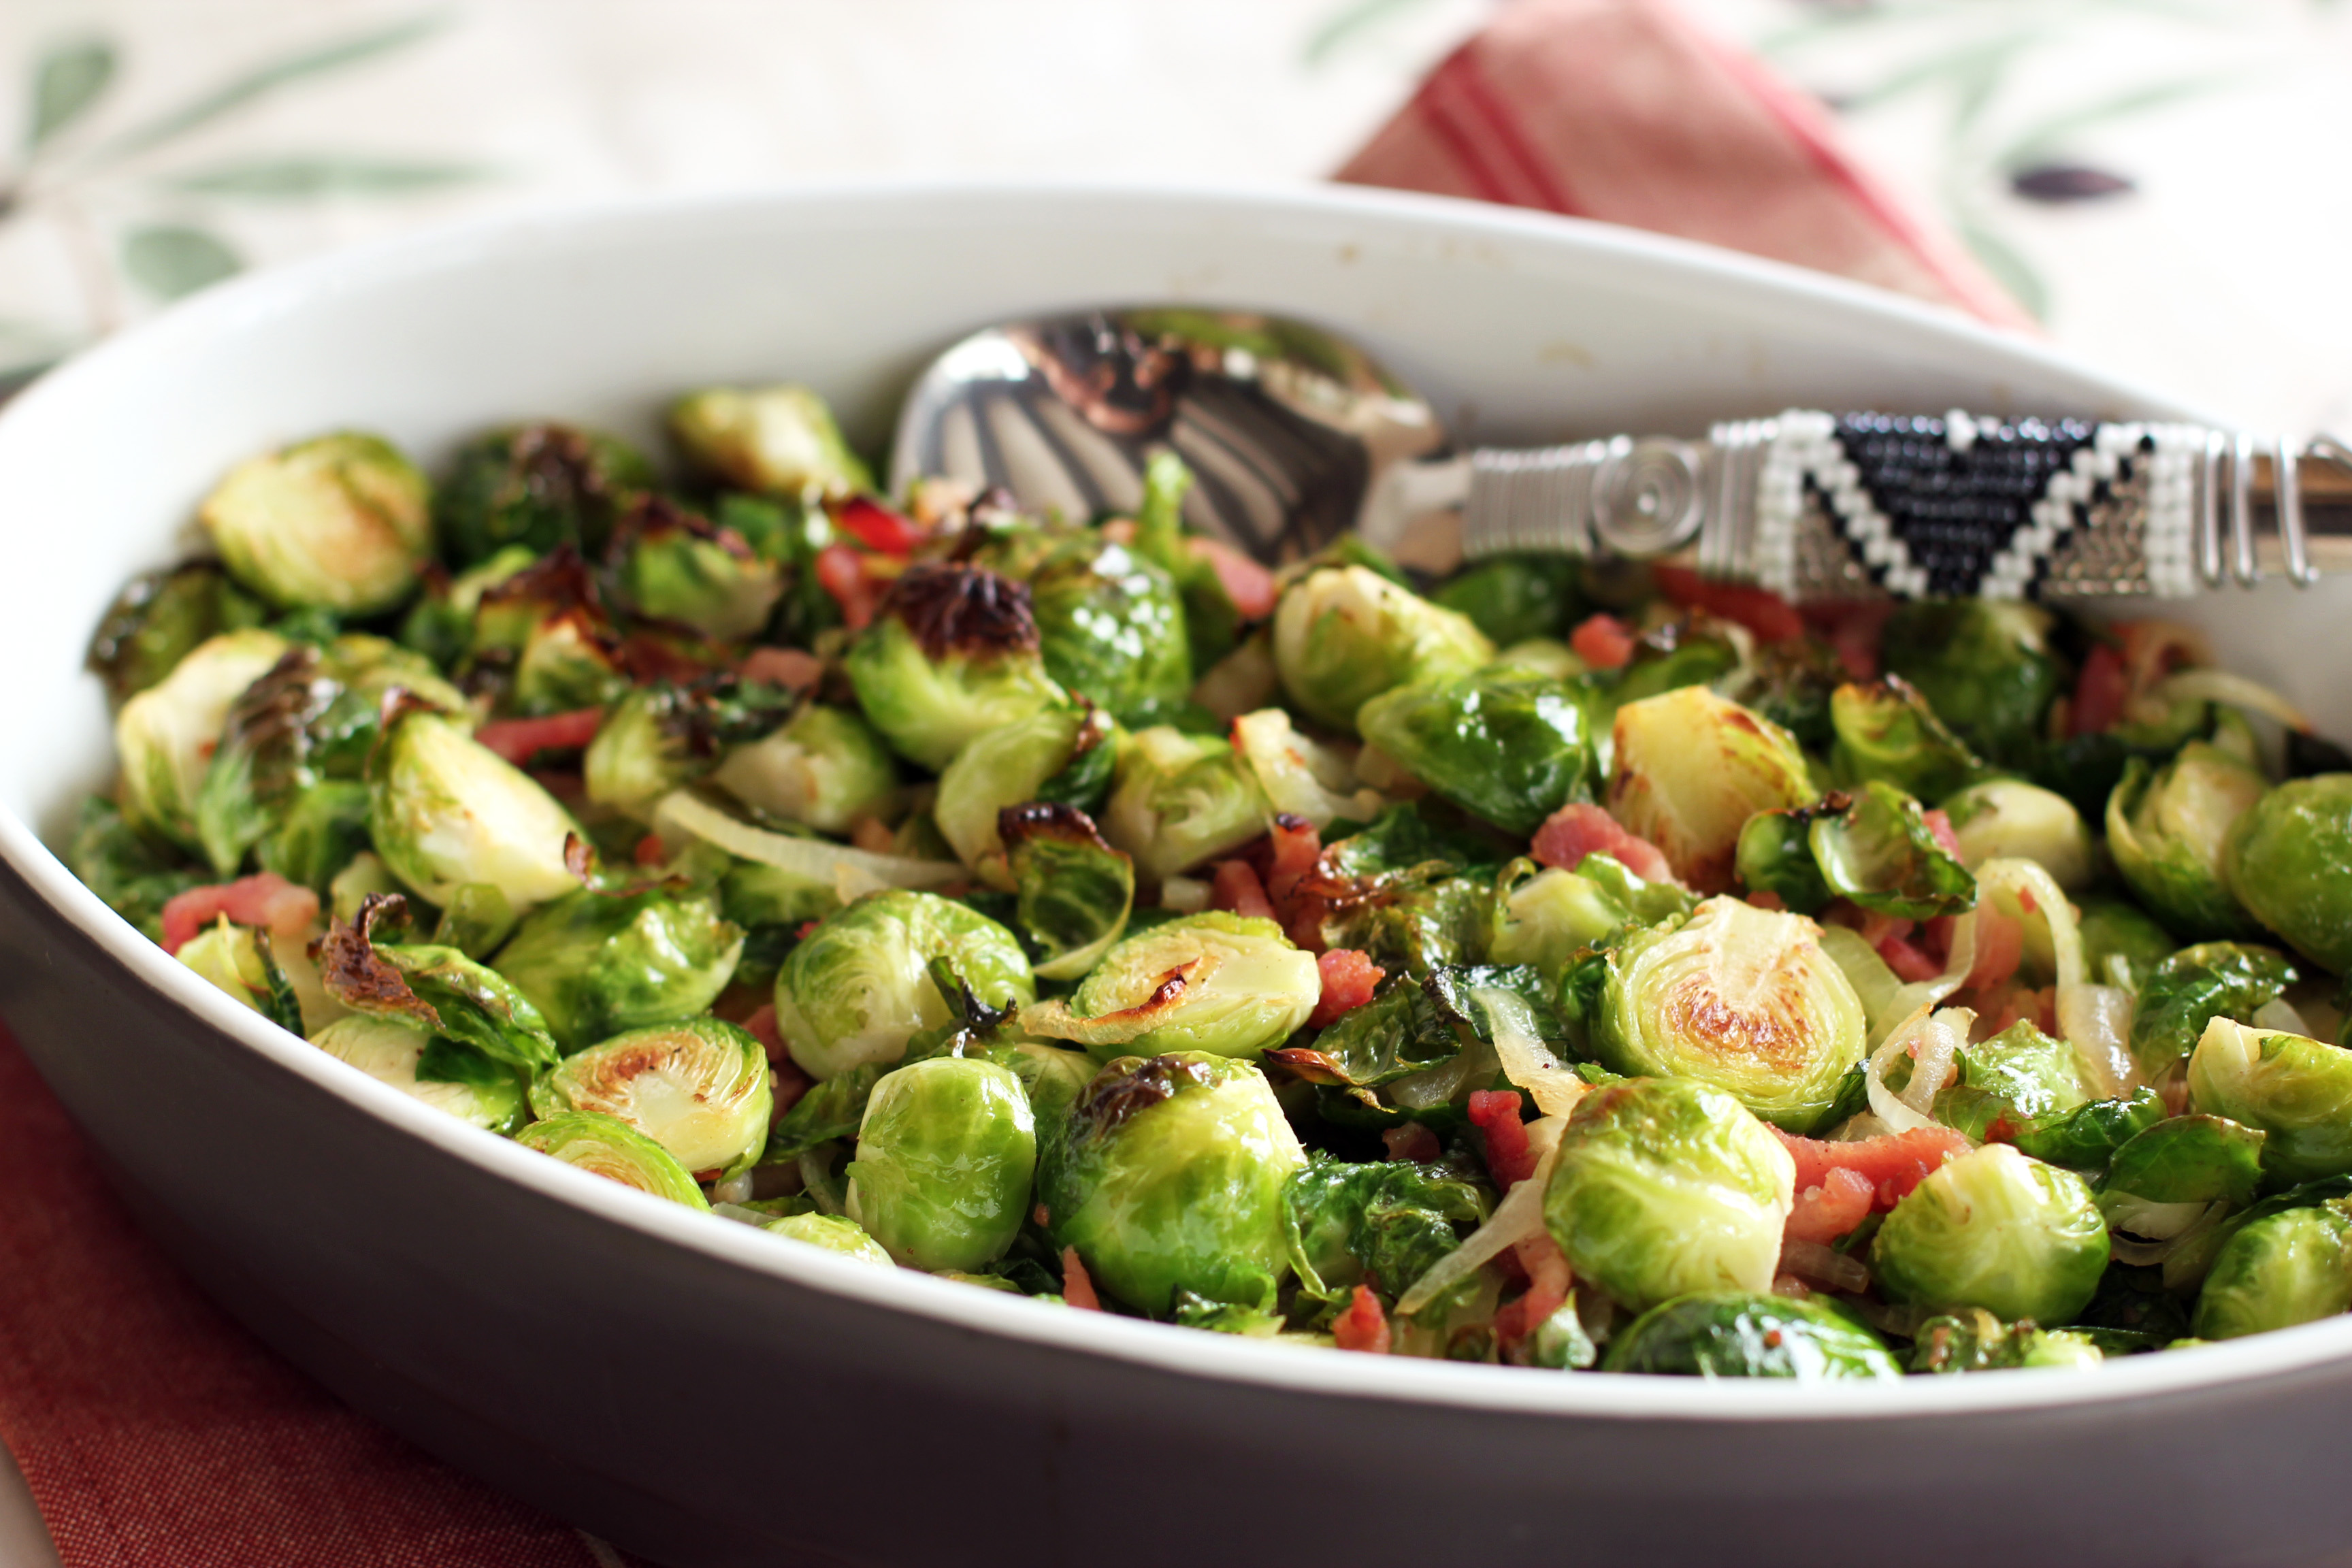 Green Brussels Sprouts in dish with spoon